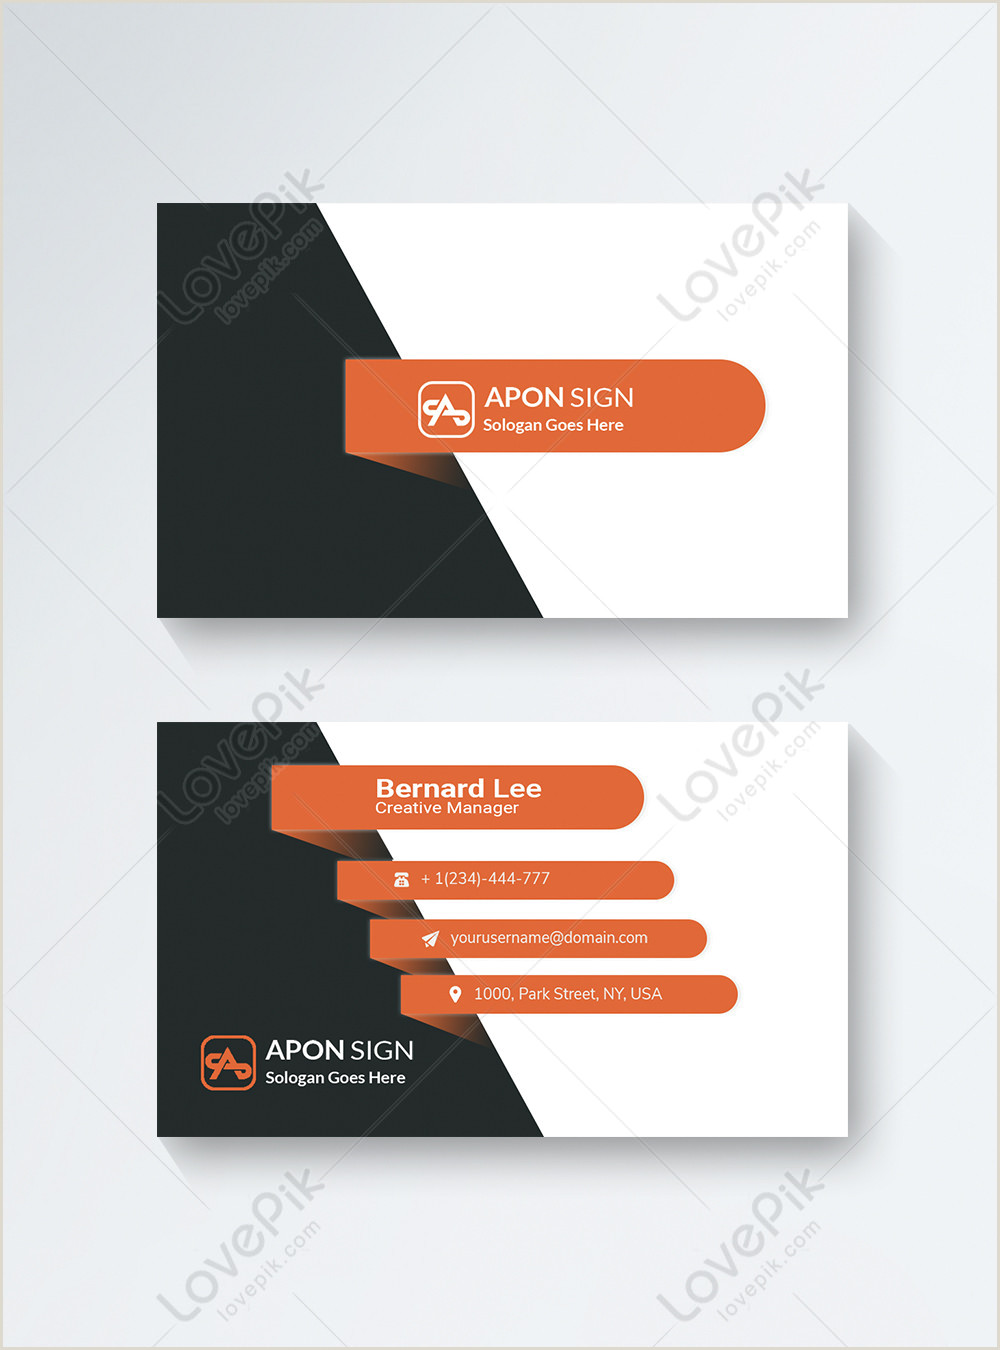 Unique Marketing Business Cards Unique Business Card Template Image Picture Free